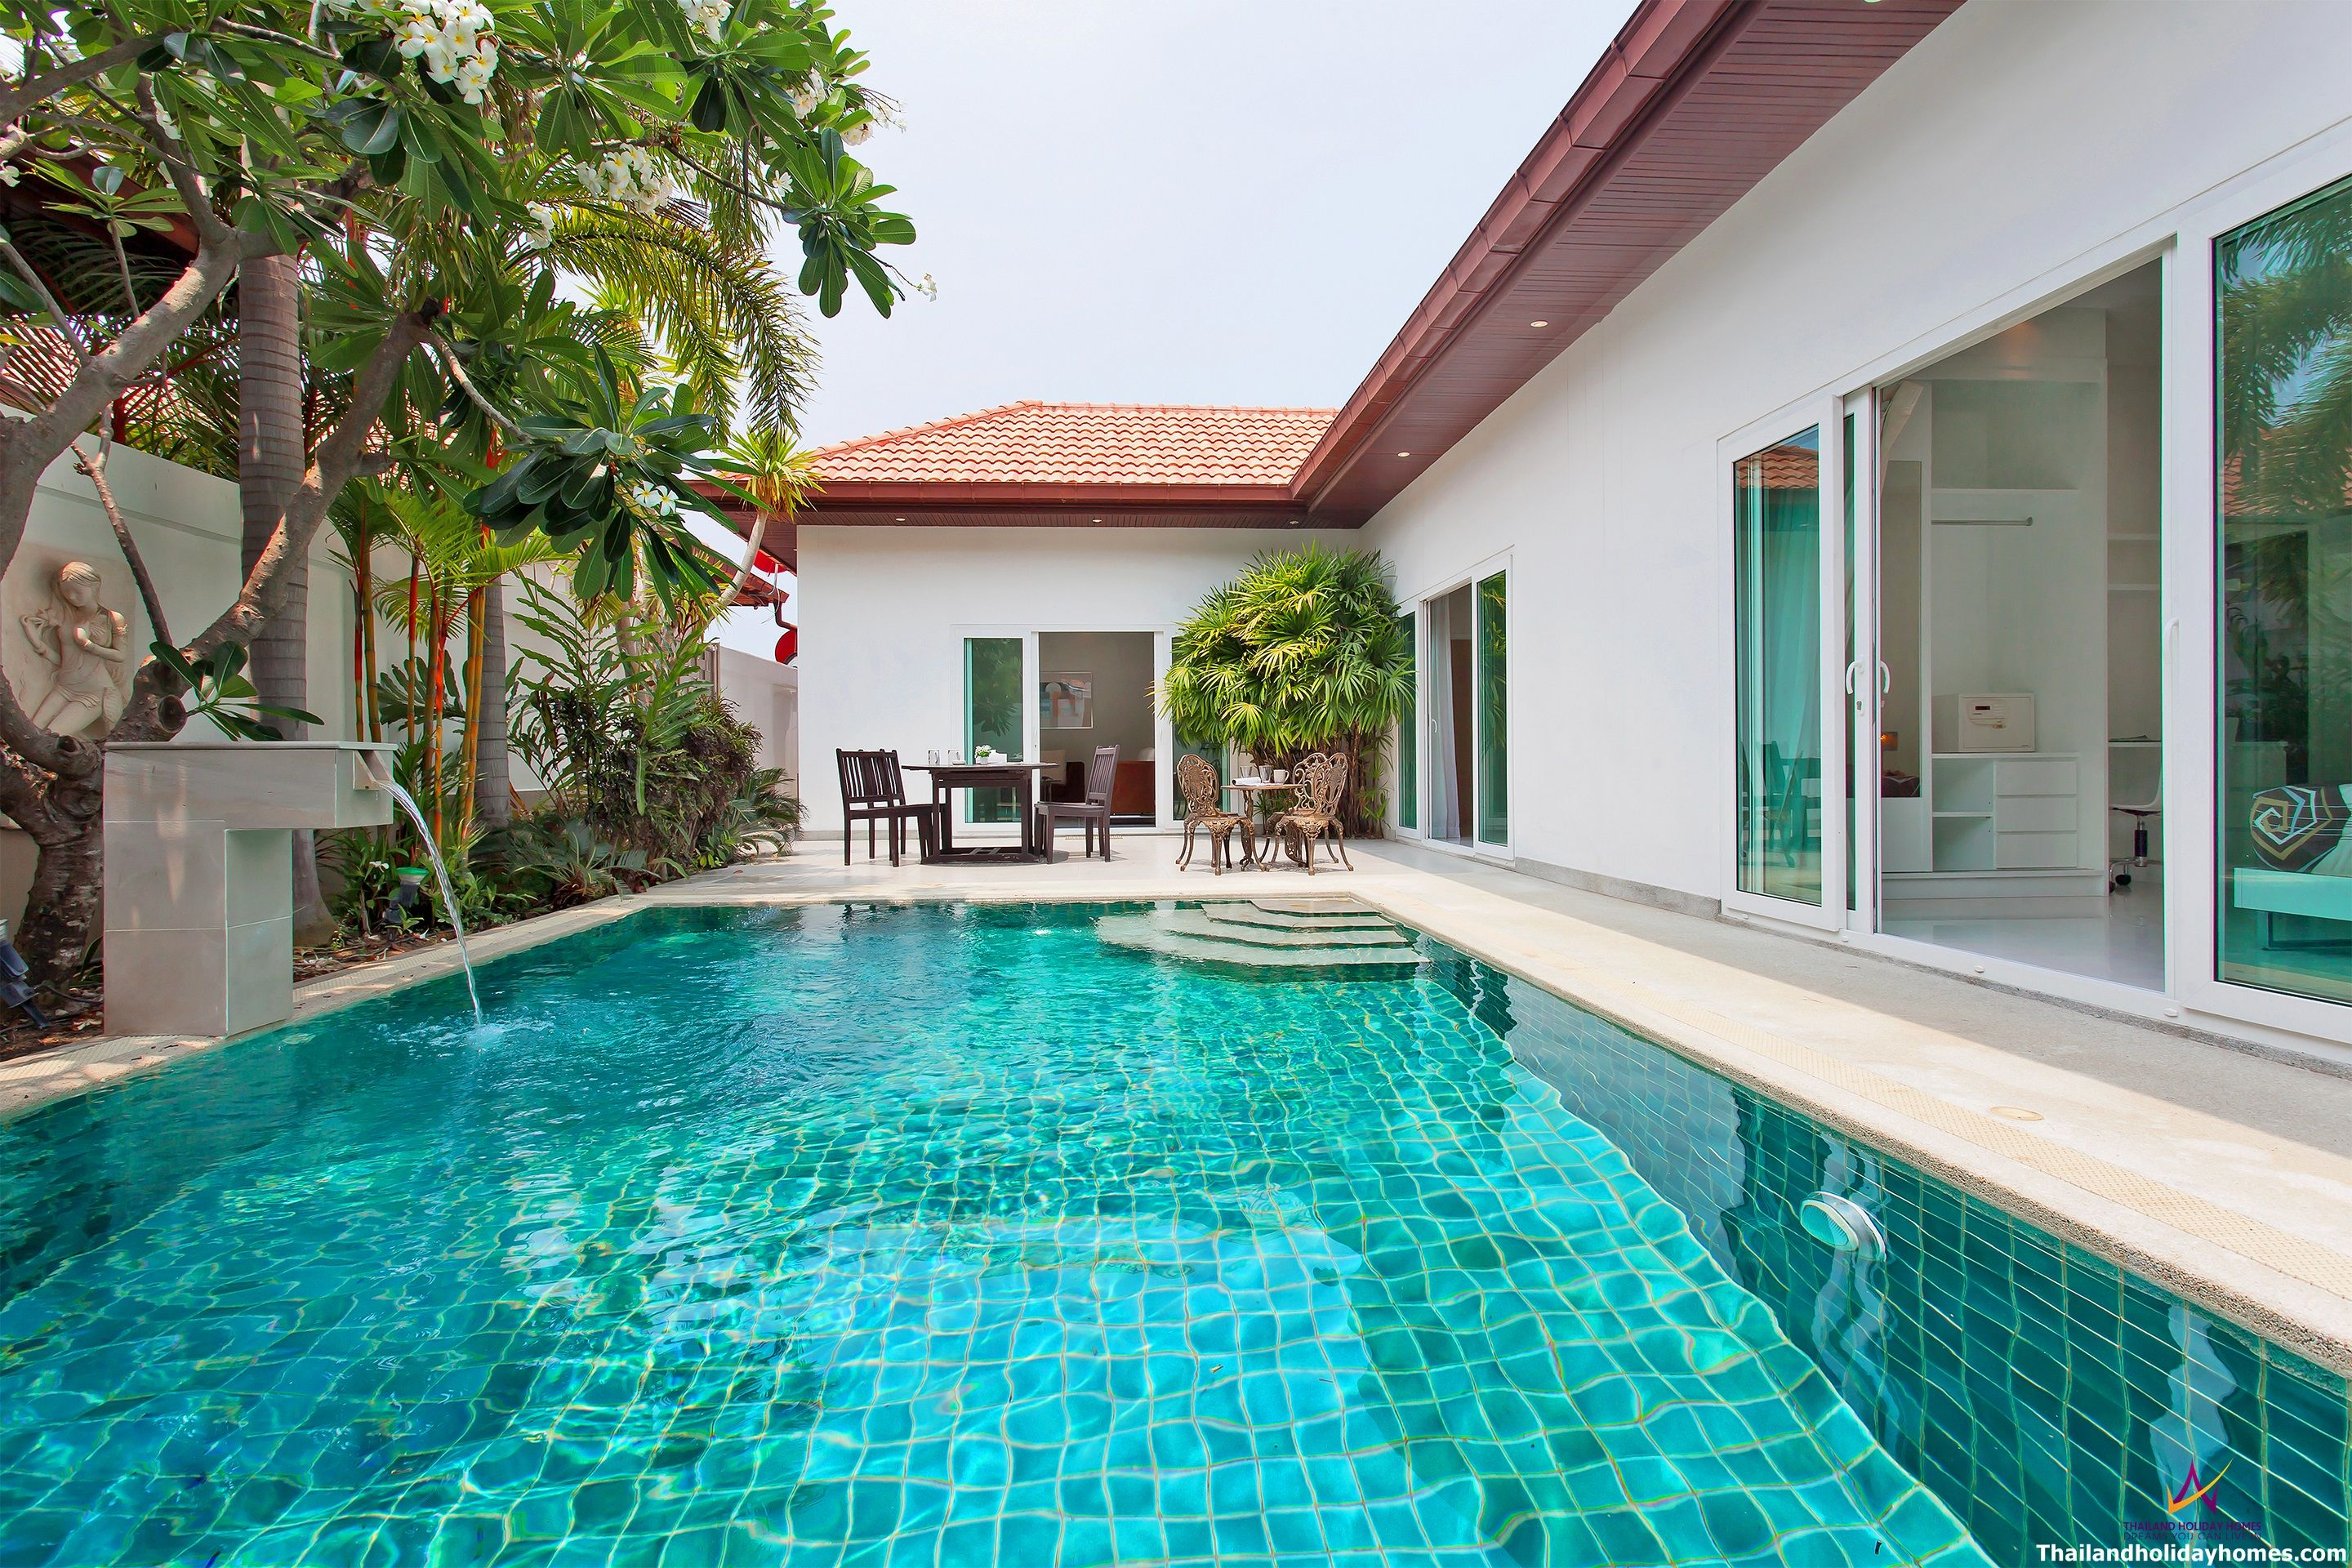 Neo grand villa with 3 bedrooms and pool near walking street. luxury